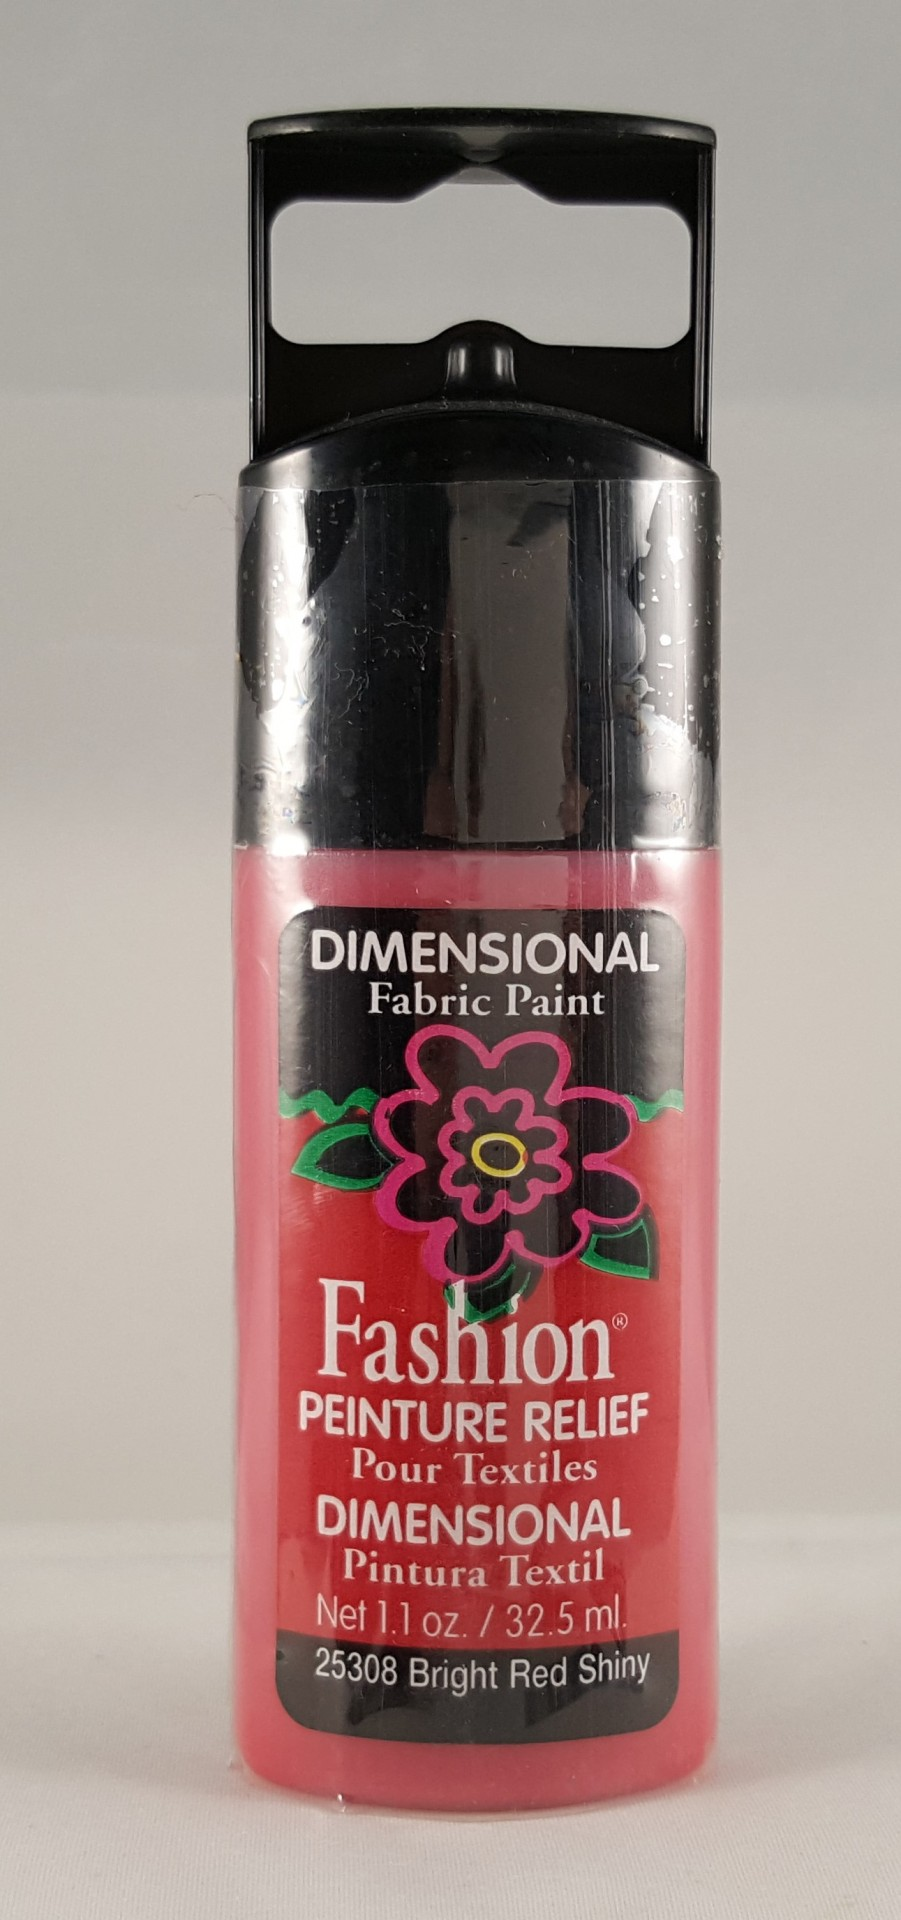 Tinta Dimensional para Tecido Fashion bright red shiny